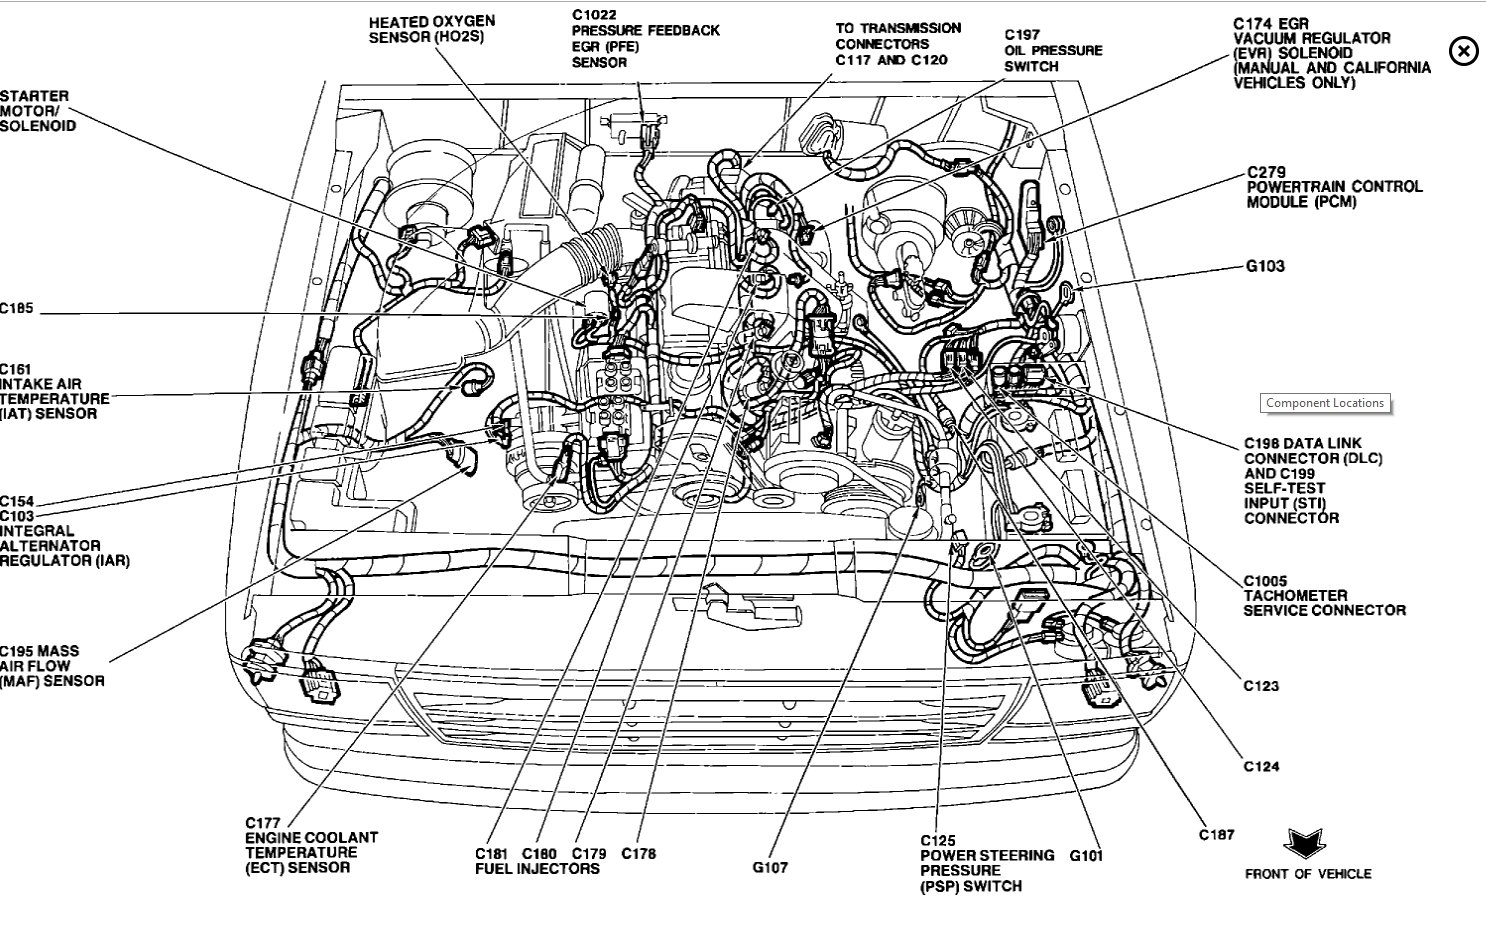 93 Ford Explorer Dpfe Sensor Wire Diagram Ford Explorer